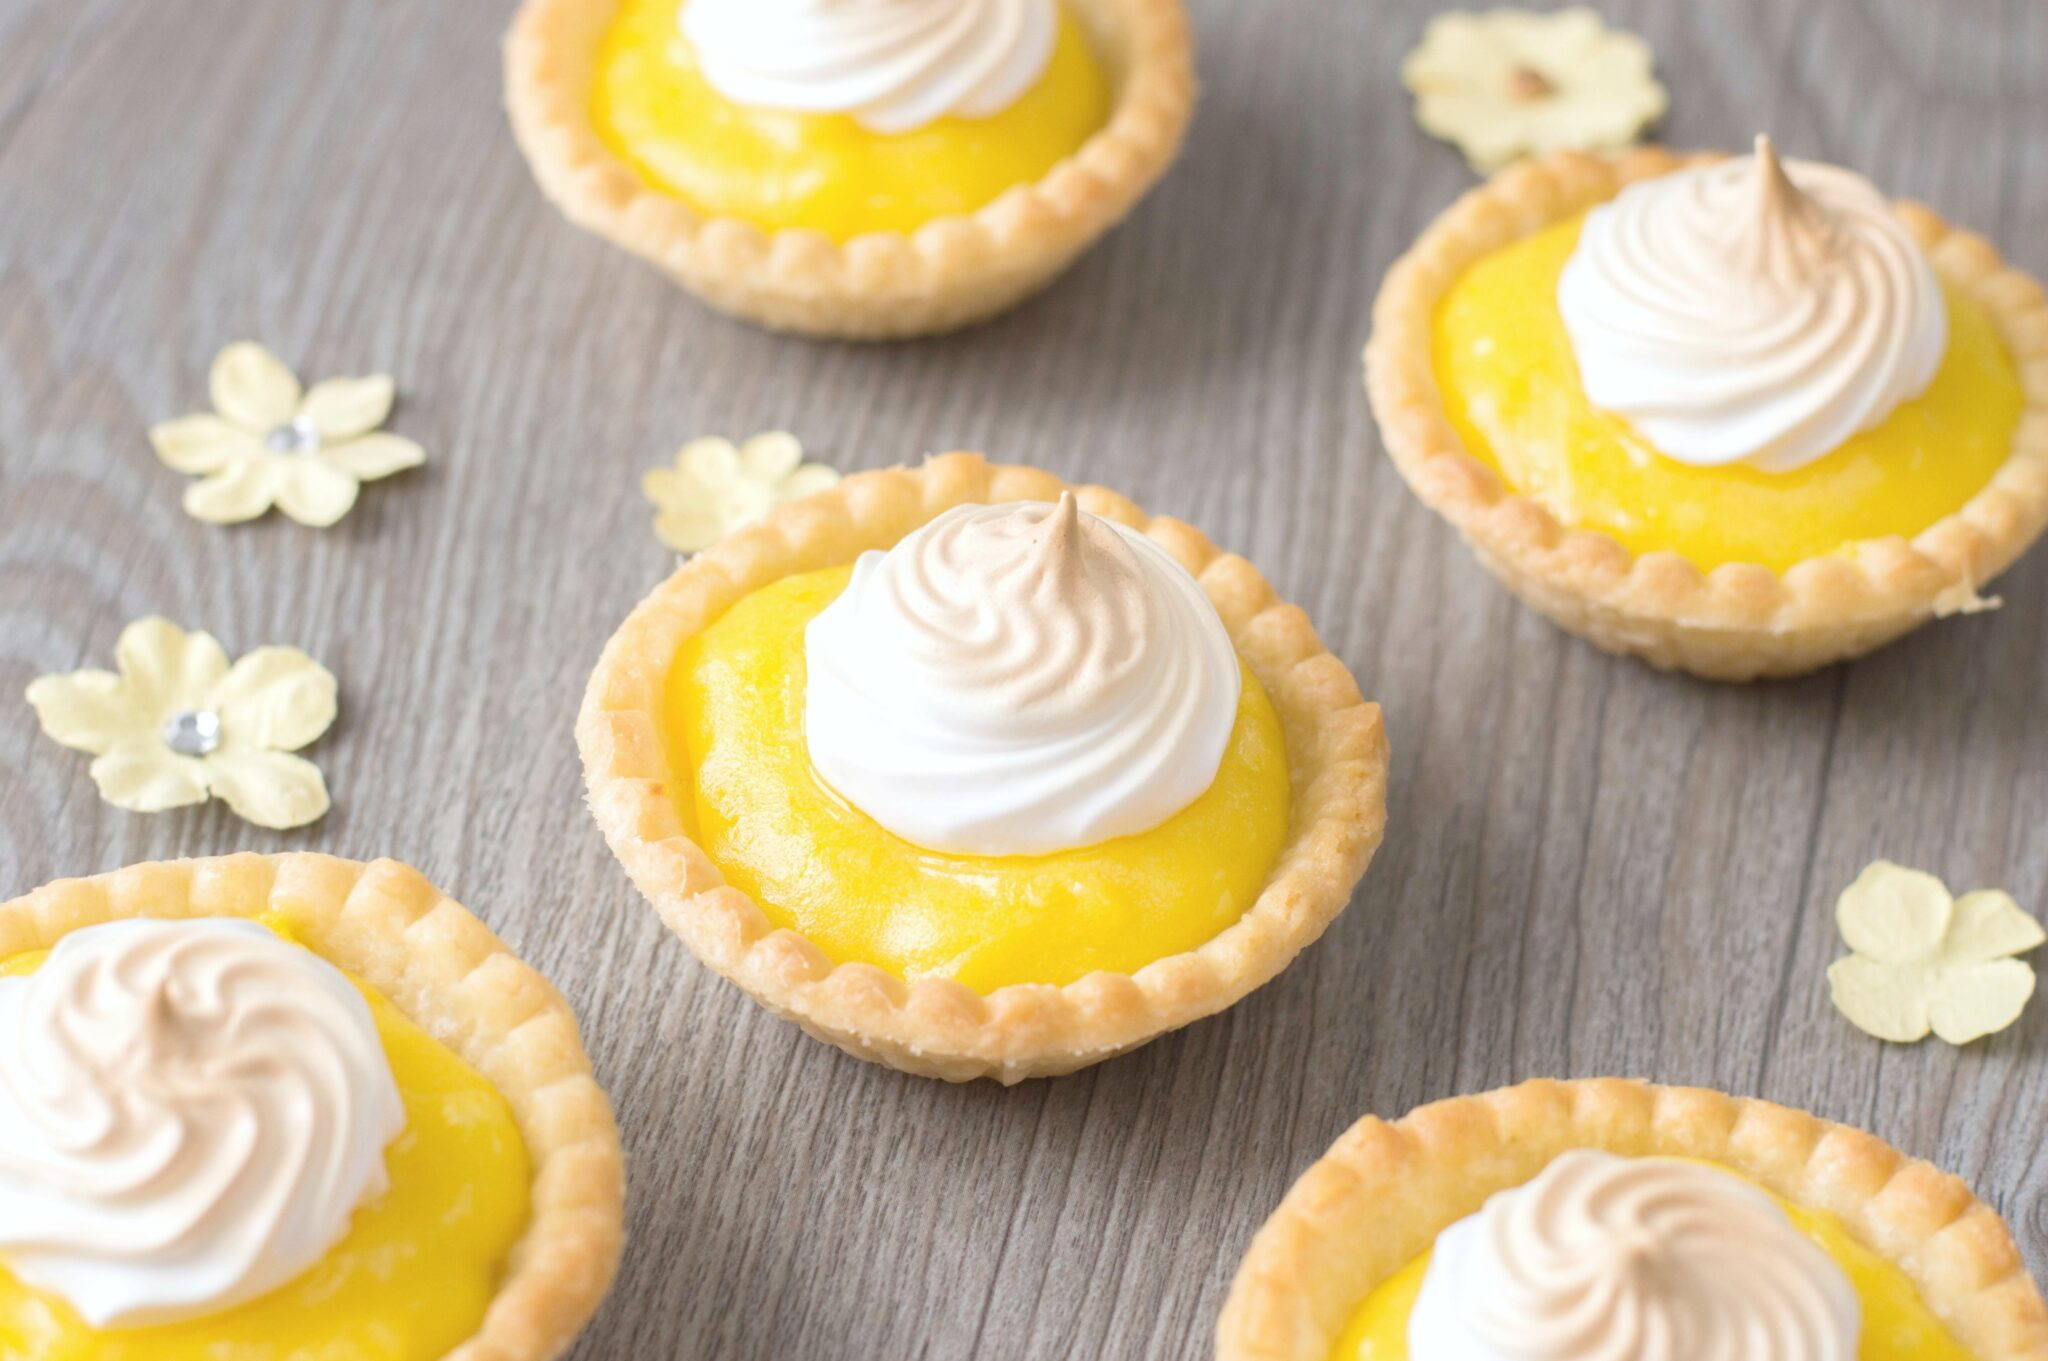 A close up of the Mini Lemon Meringue Tarts with the meringue browned.